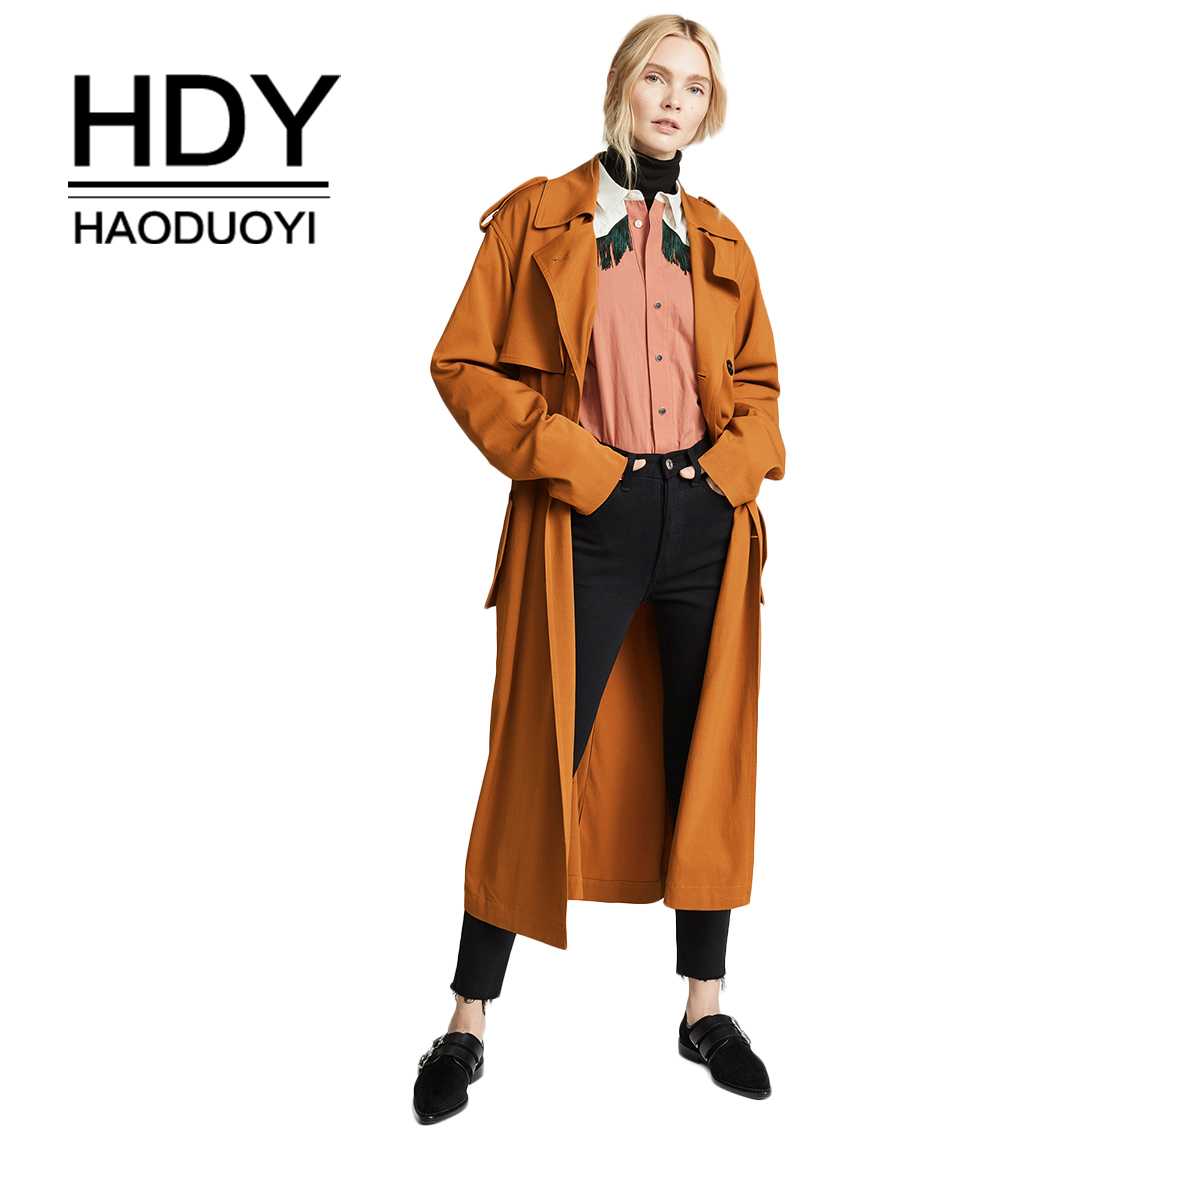 HDY Haoduoyi New Classic European   Trench   Coat Temperament double-breasted Side Zip Women Pea Coat real photos